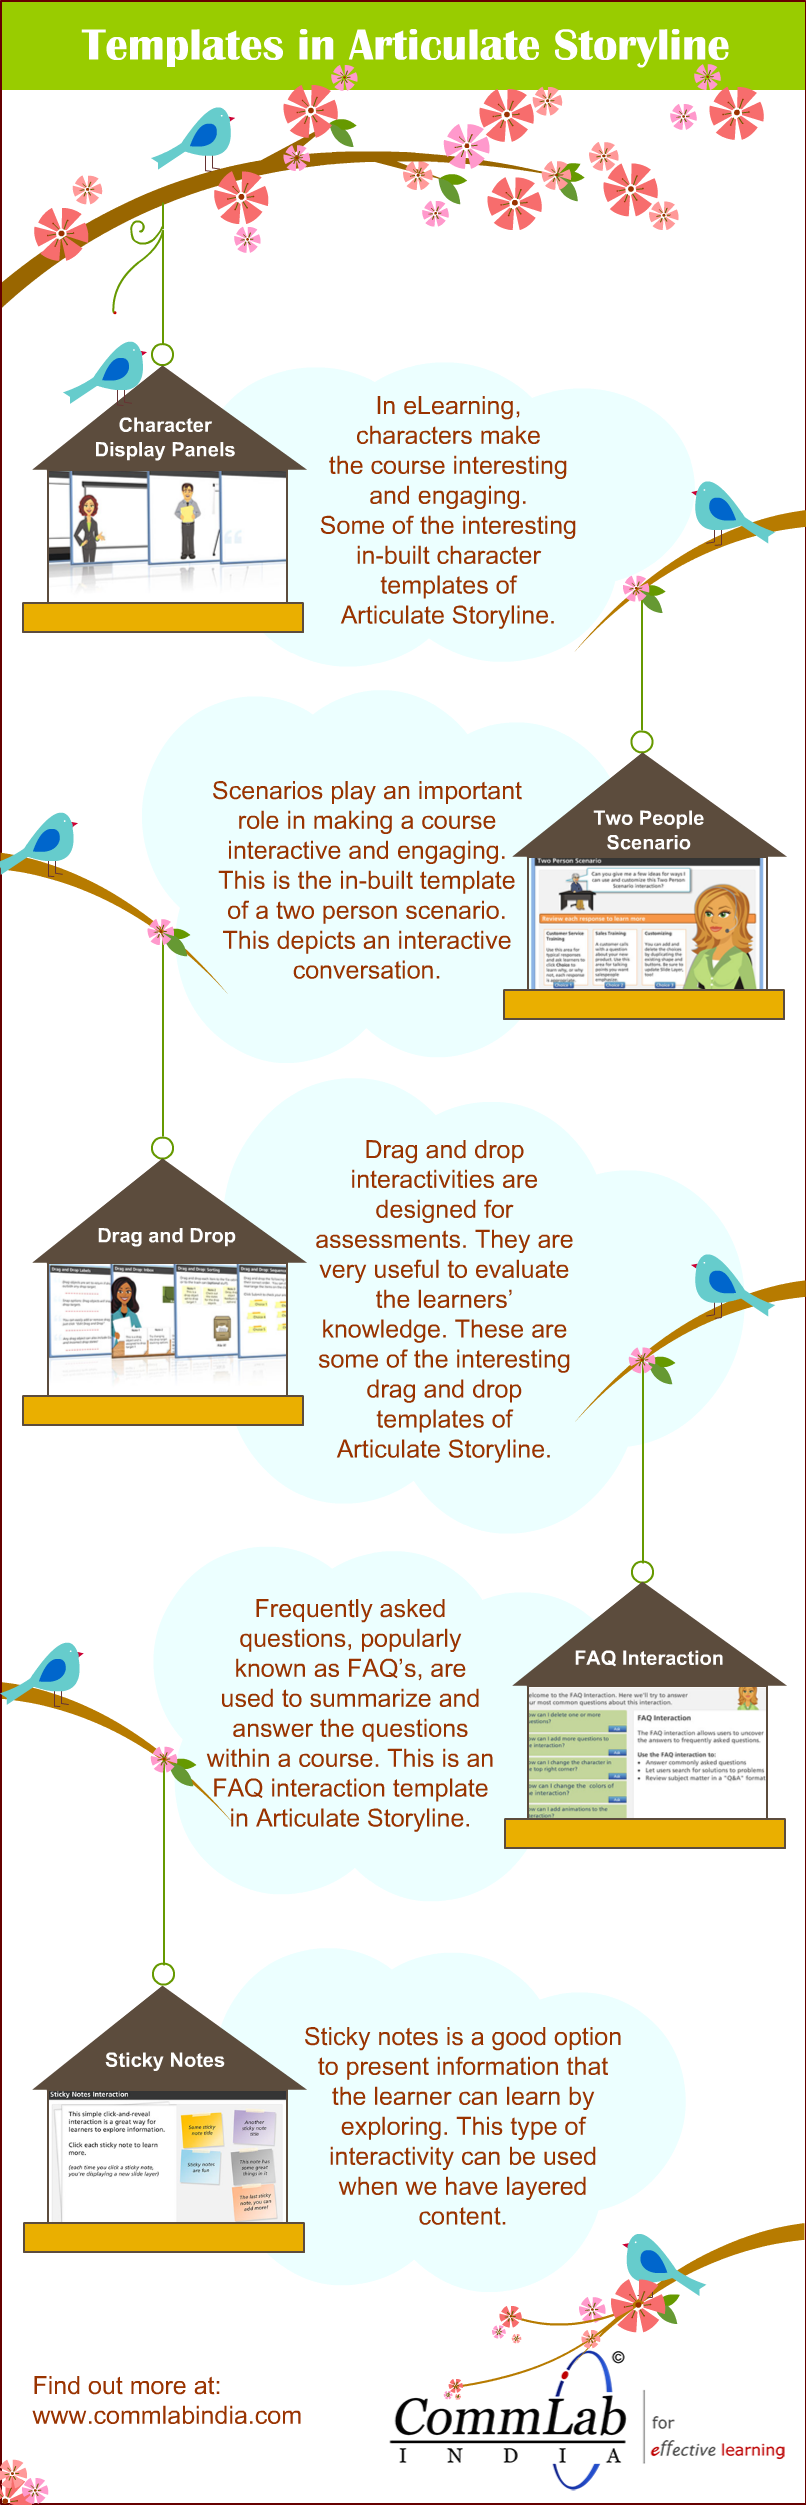 Effective Ways of Using inbuilt-templates in Articulate Storyline - An Infographic